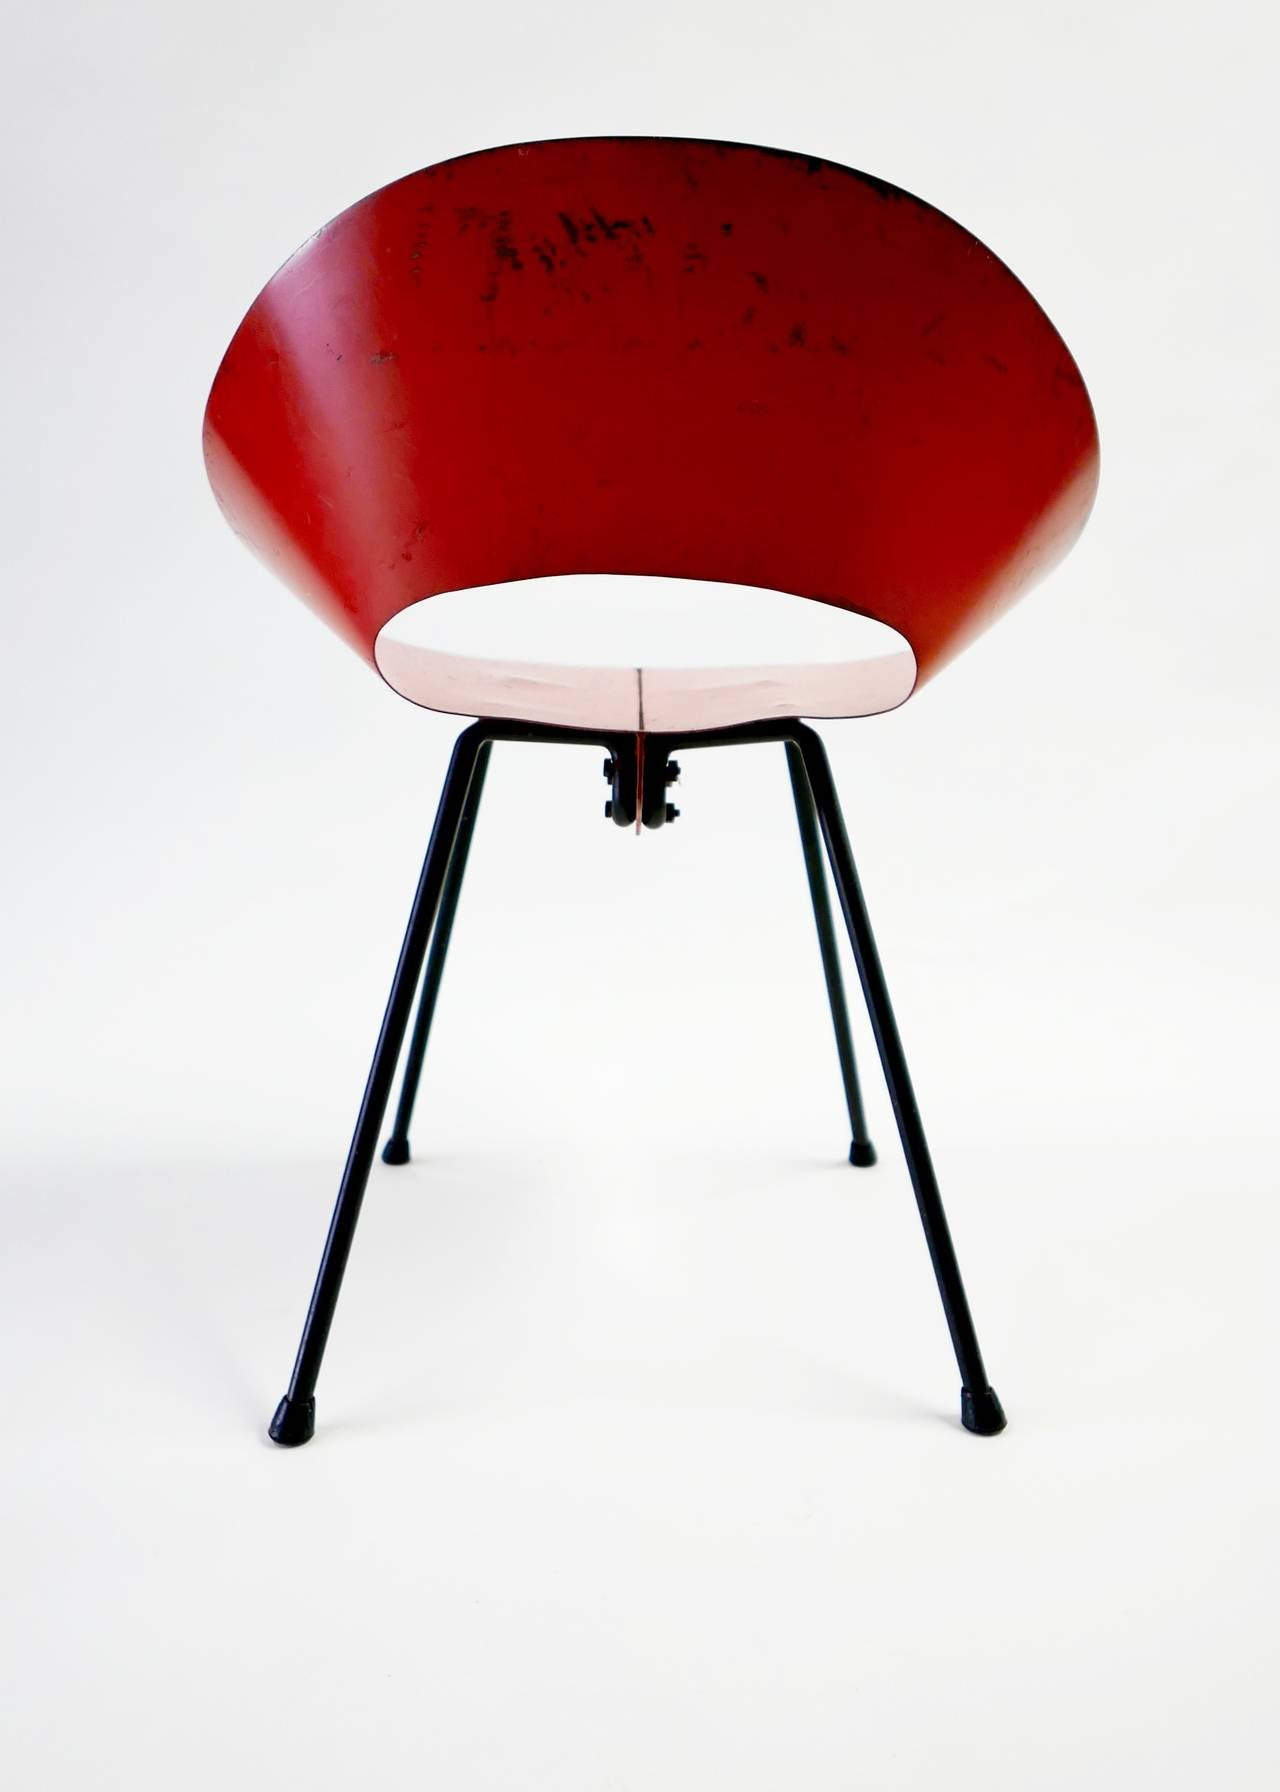 Donald knorr chair knoll associates 1948 for sale at 1stdibs for Knoll and associates